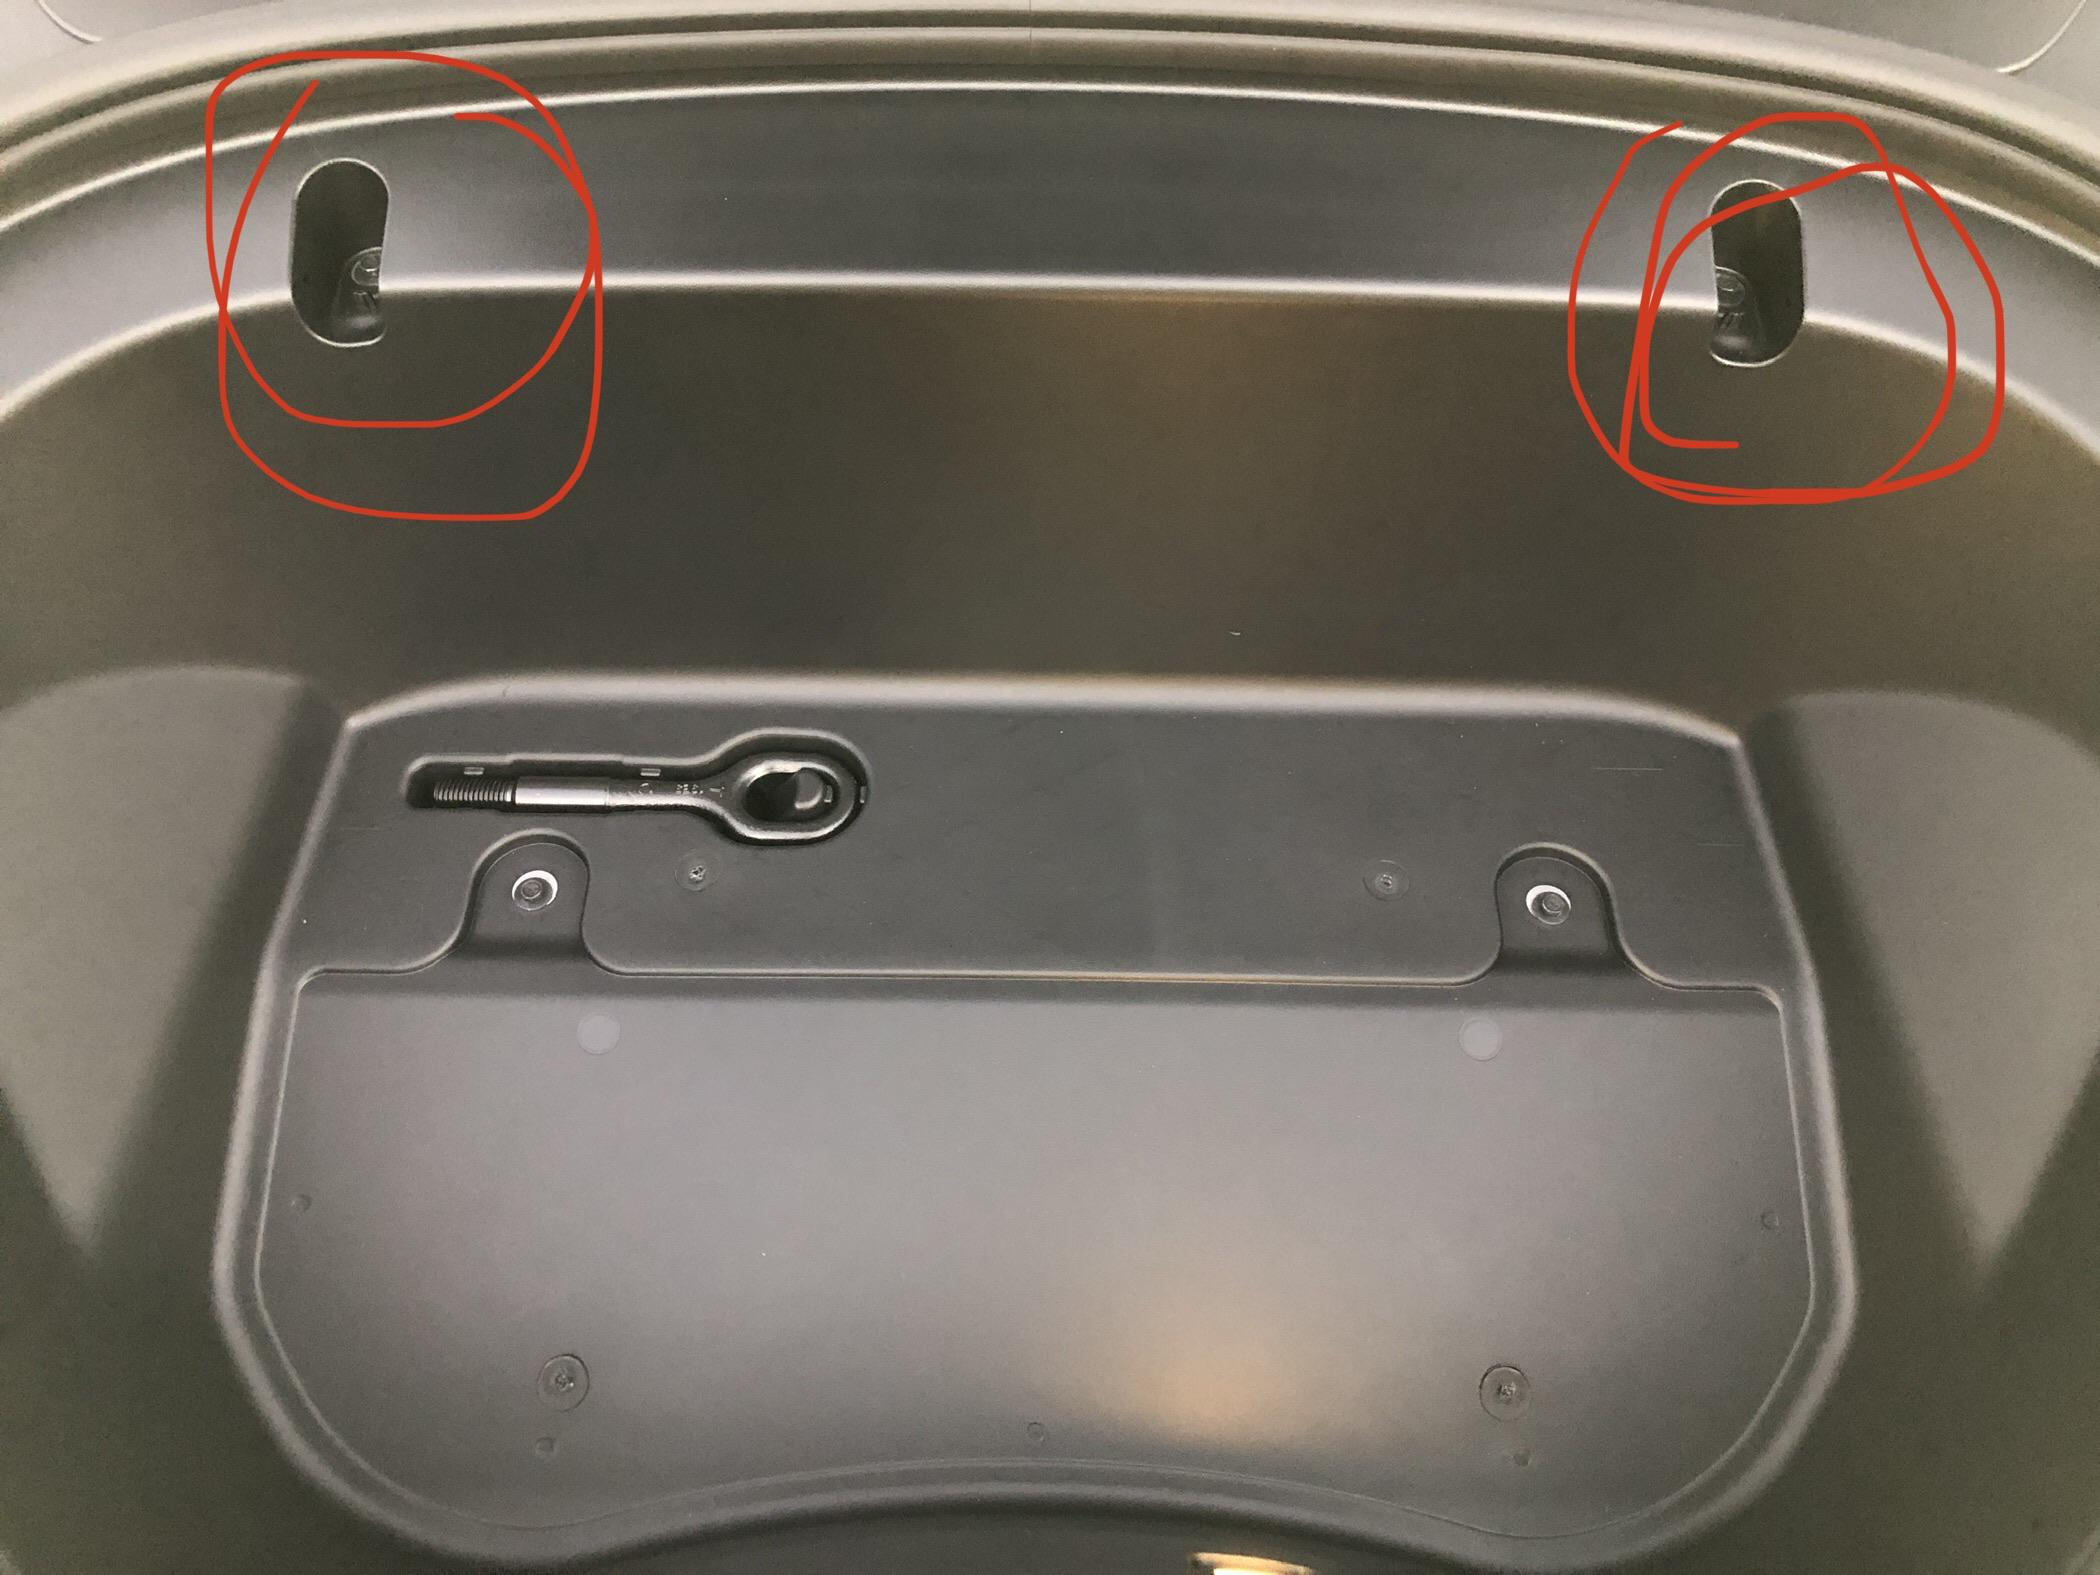 Model 3 frunk hooks missing